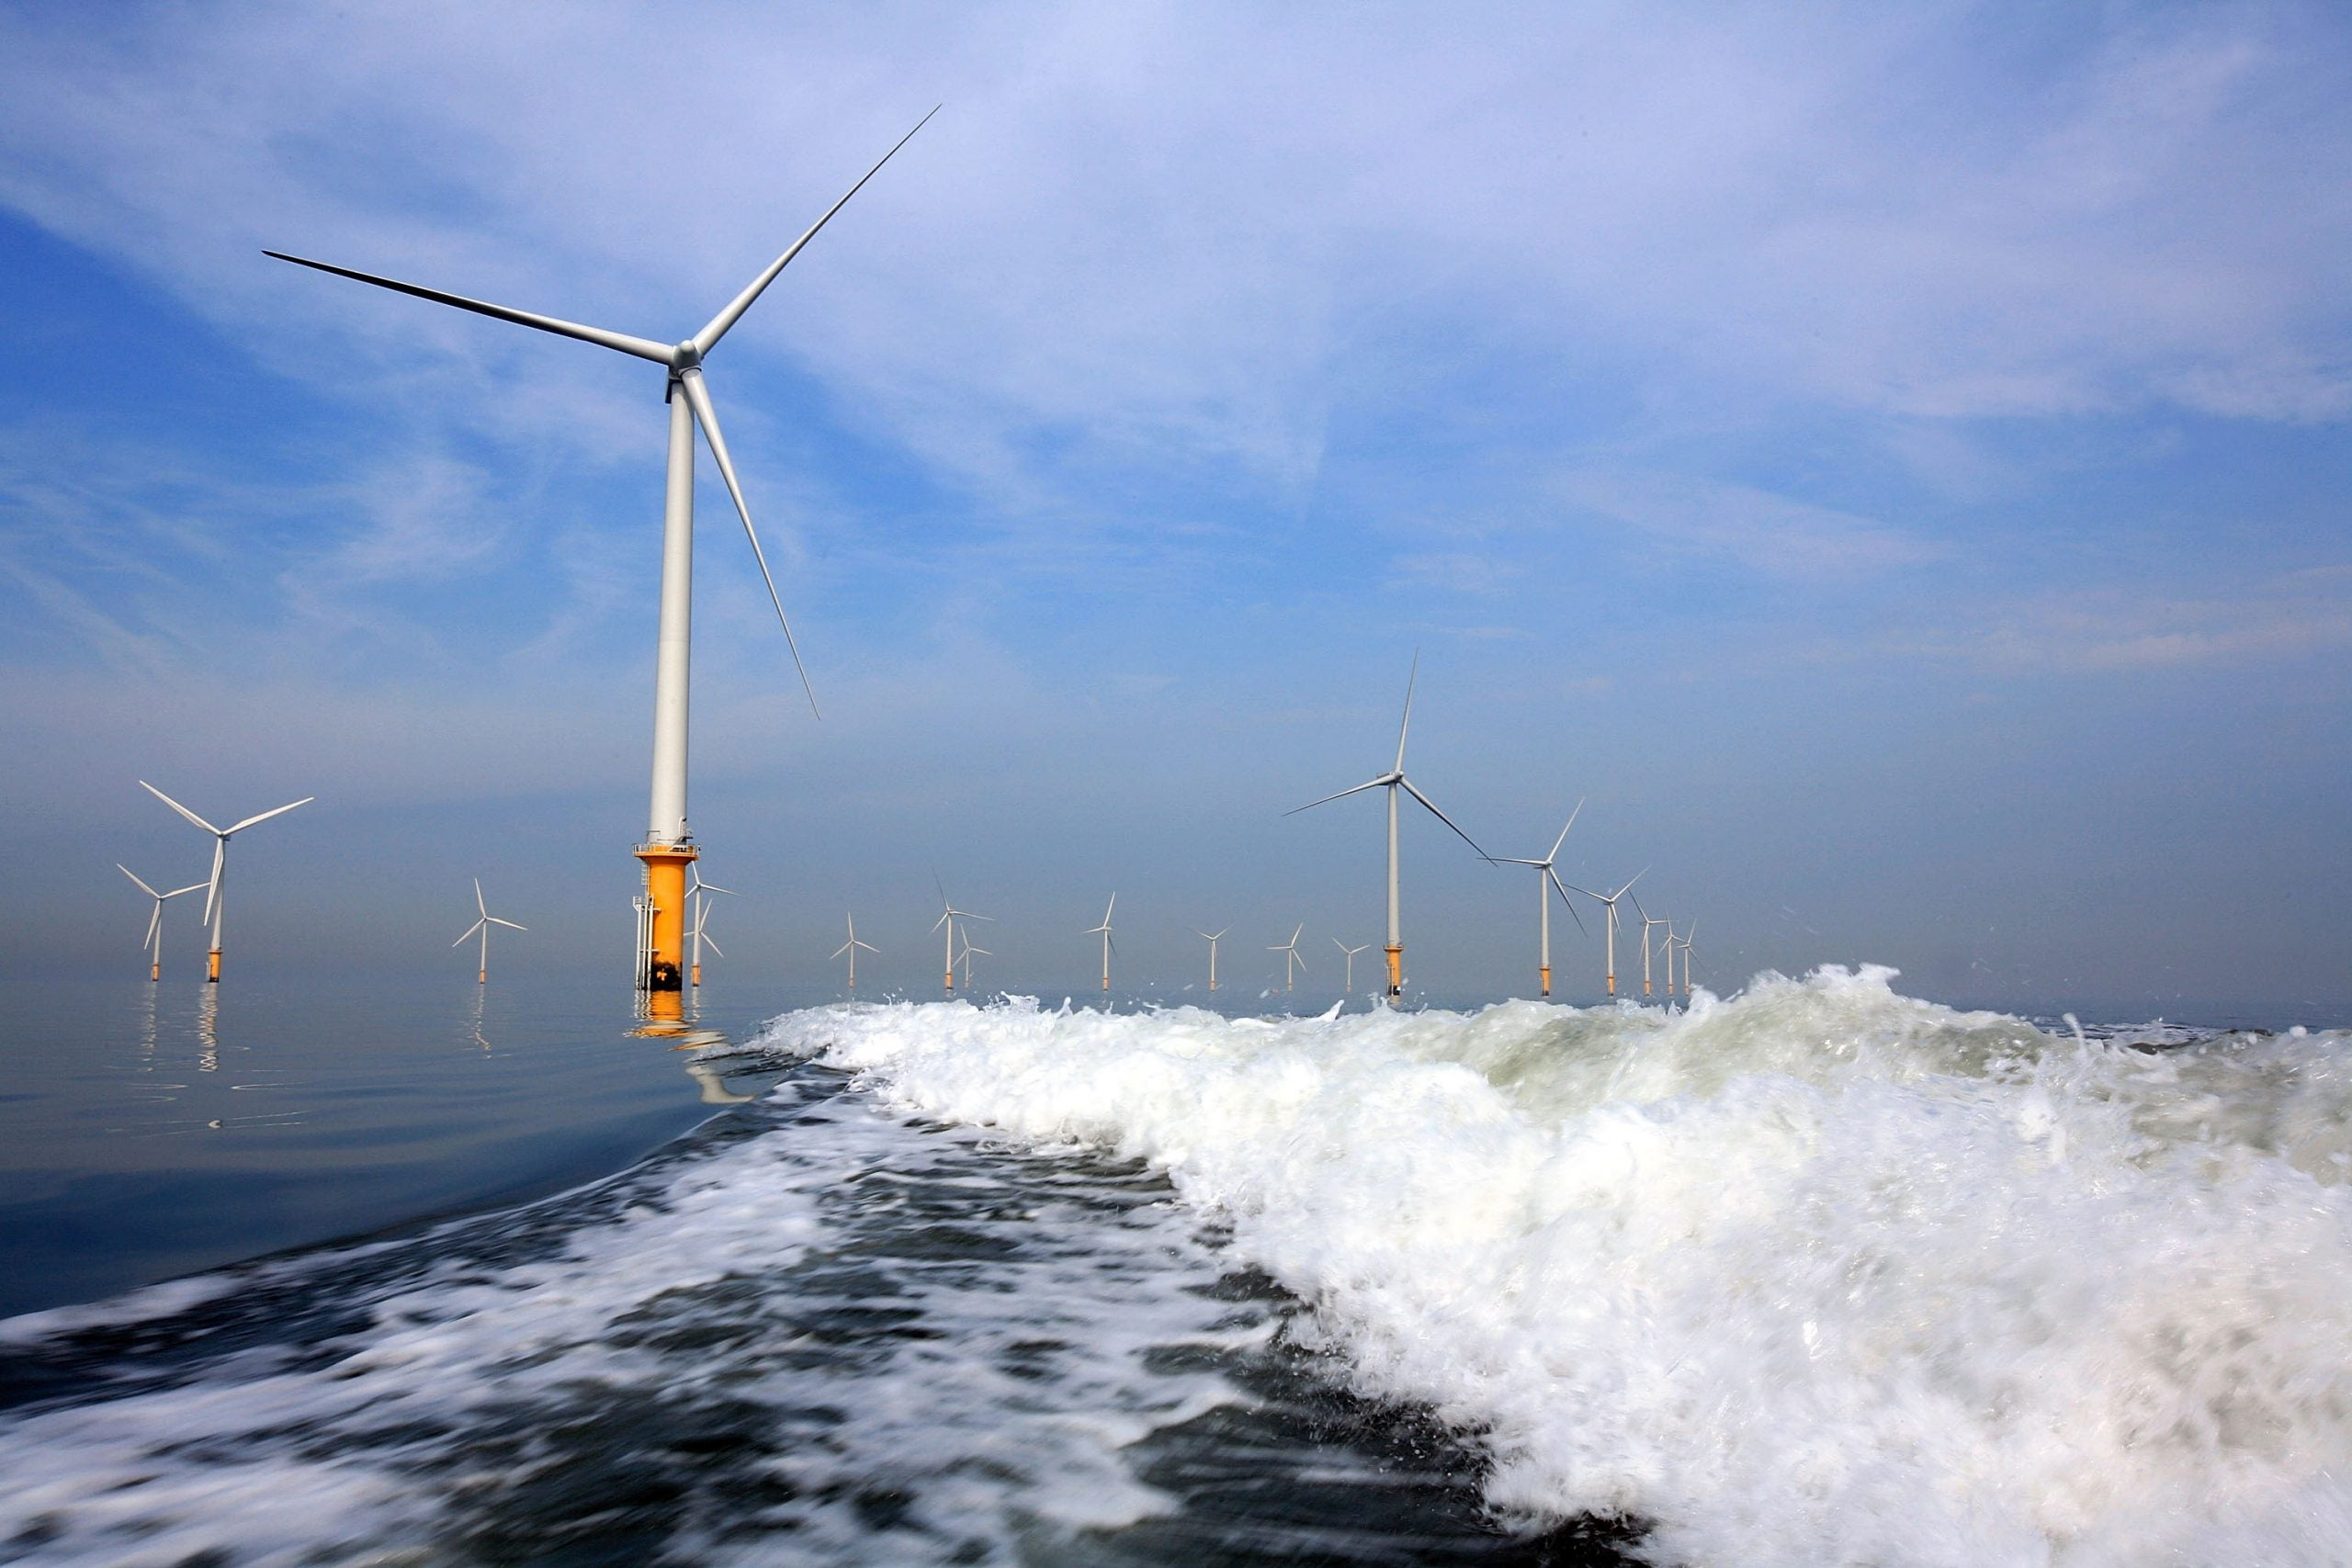 How to produce offshore energy without harming the oceans